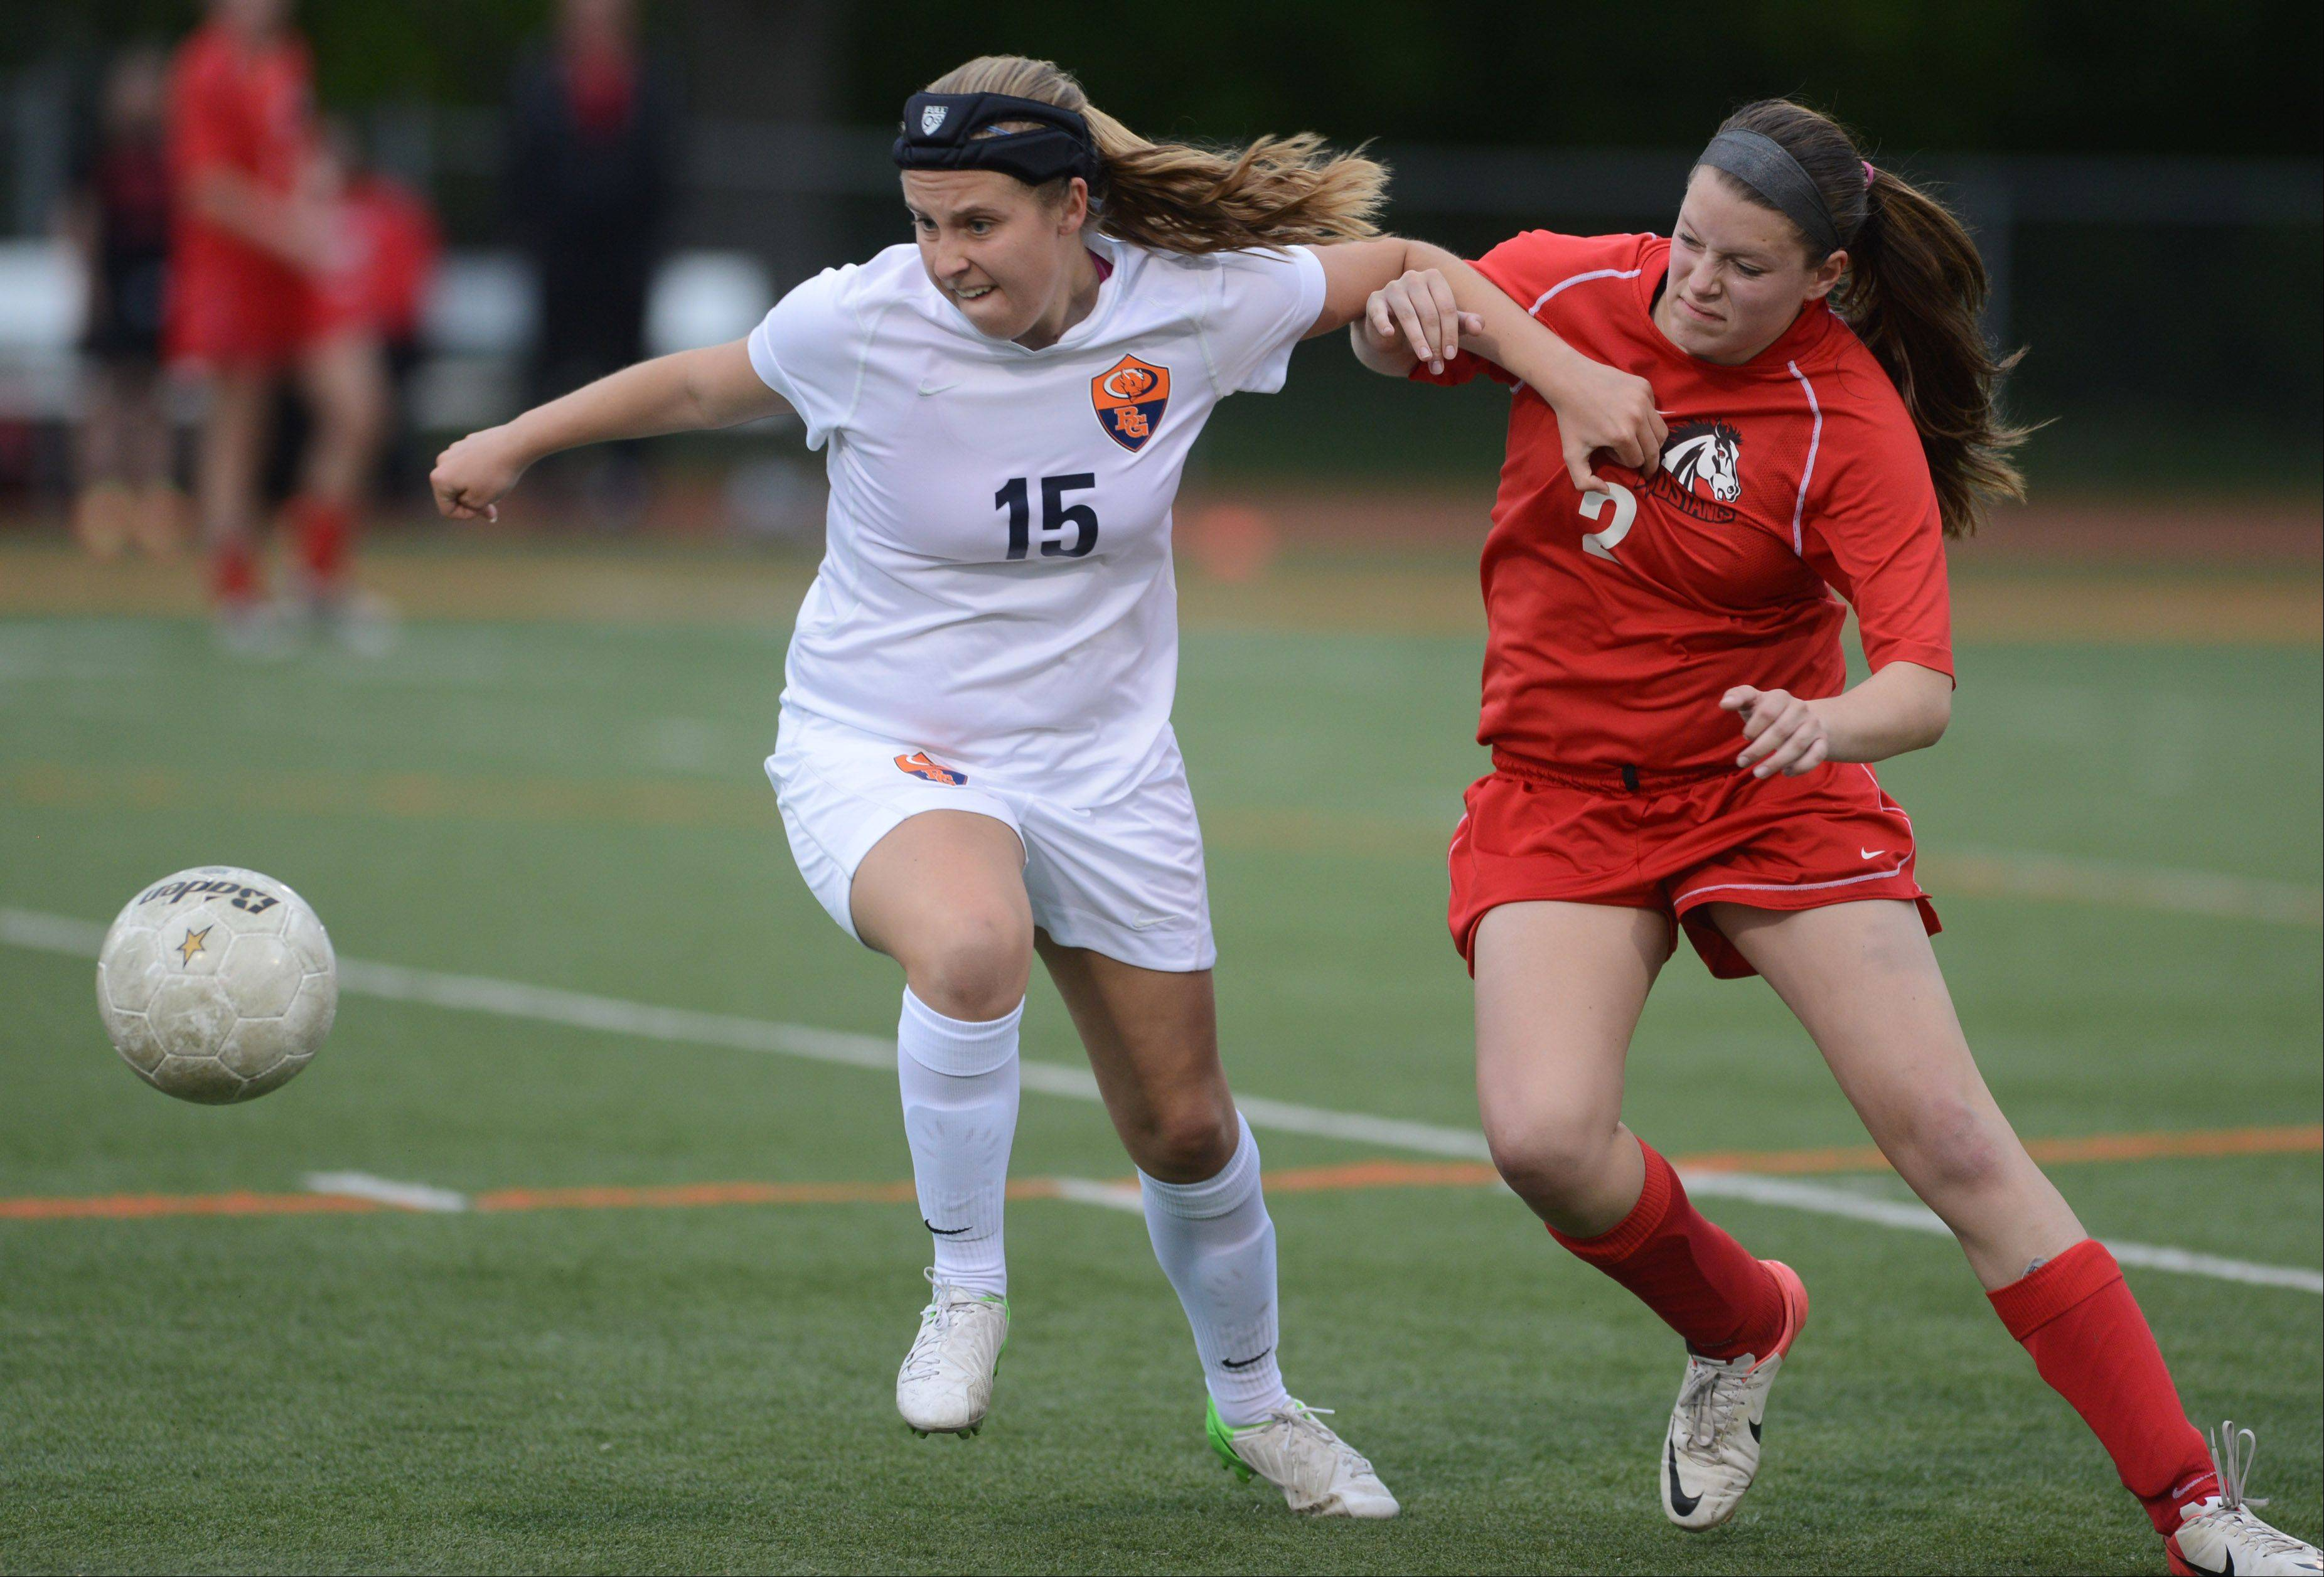 Buffalo Grove's Kelly VandeMerkt, 15, and Mundelein's Shannon Carroll chase down a loose ball during Friday's Class 3A girls soccer regional final at Libertyville High School.